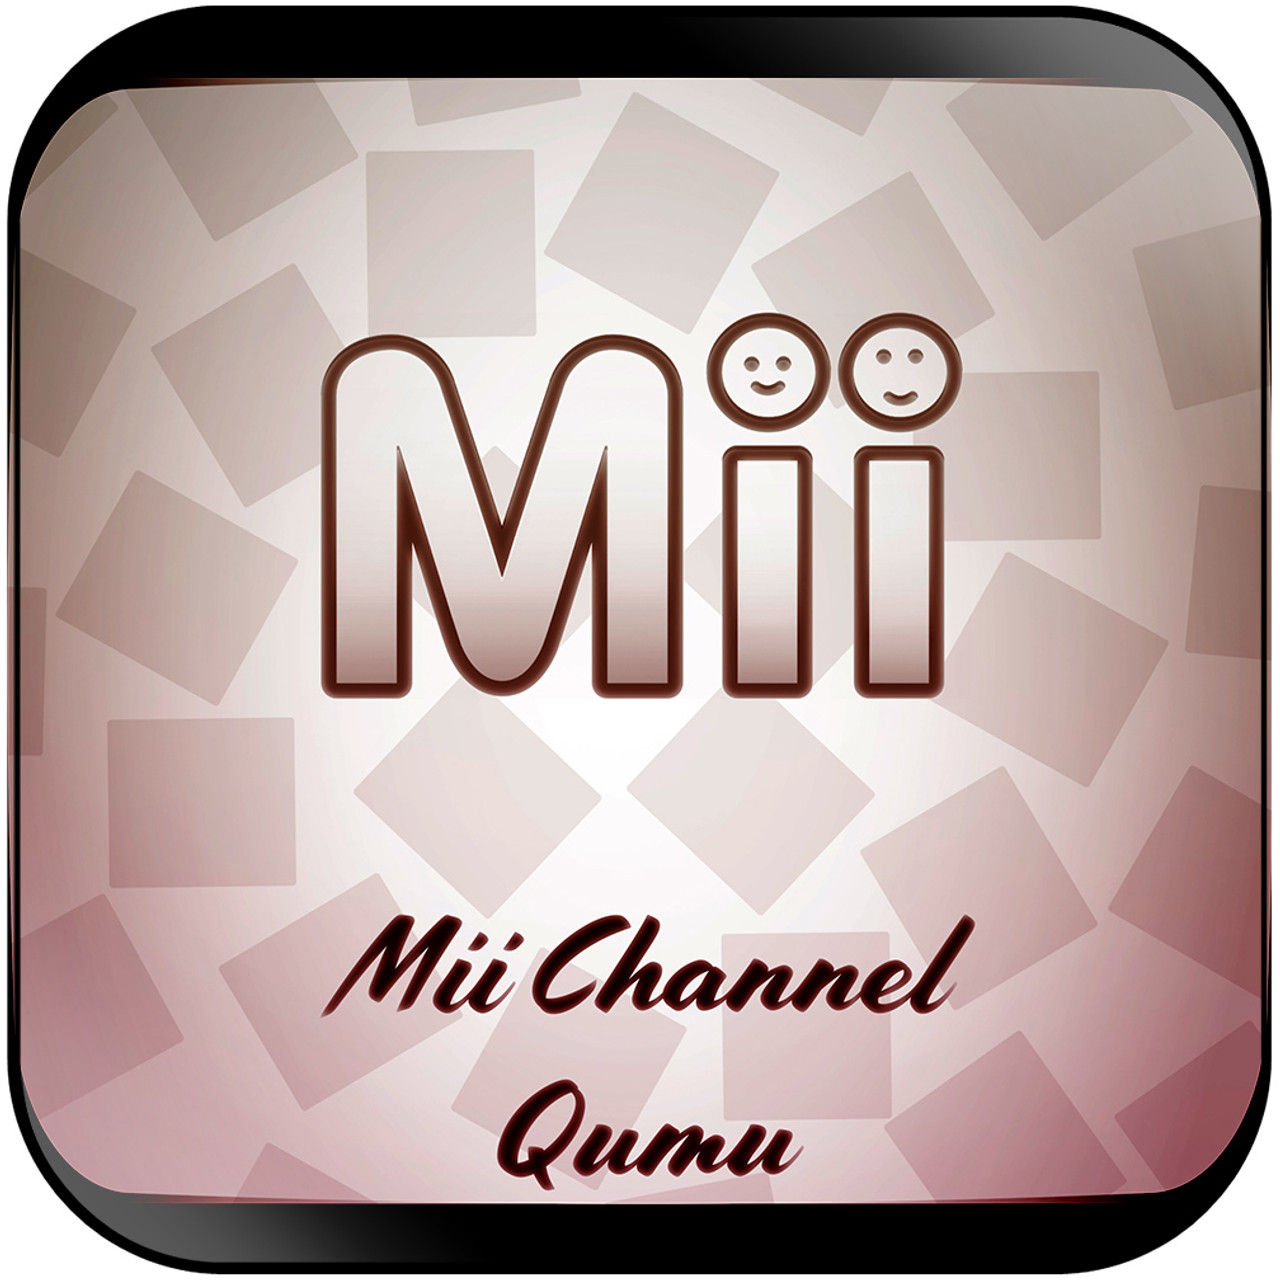 Qumu - Mii Channel From Nintendo Wii Mii Channel Album Cover Sticker Album  Cover Sticker